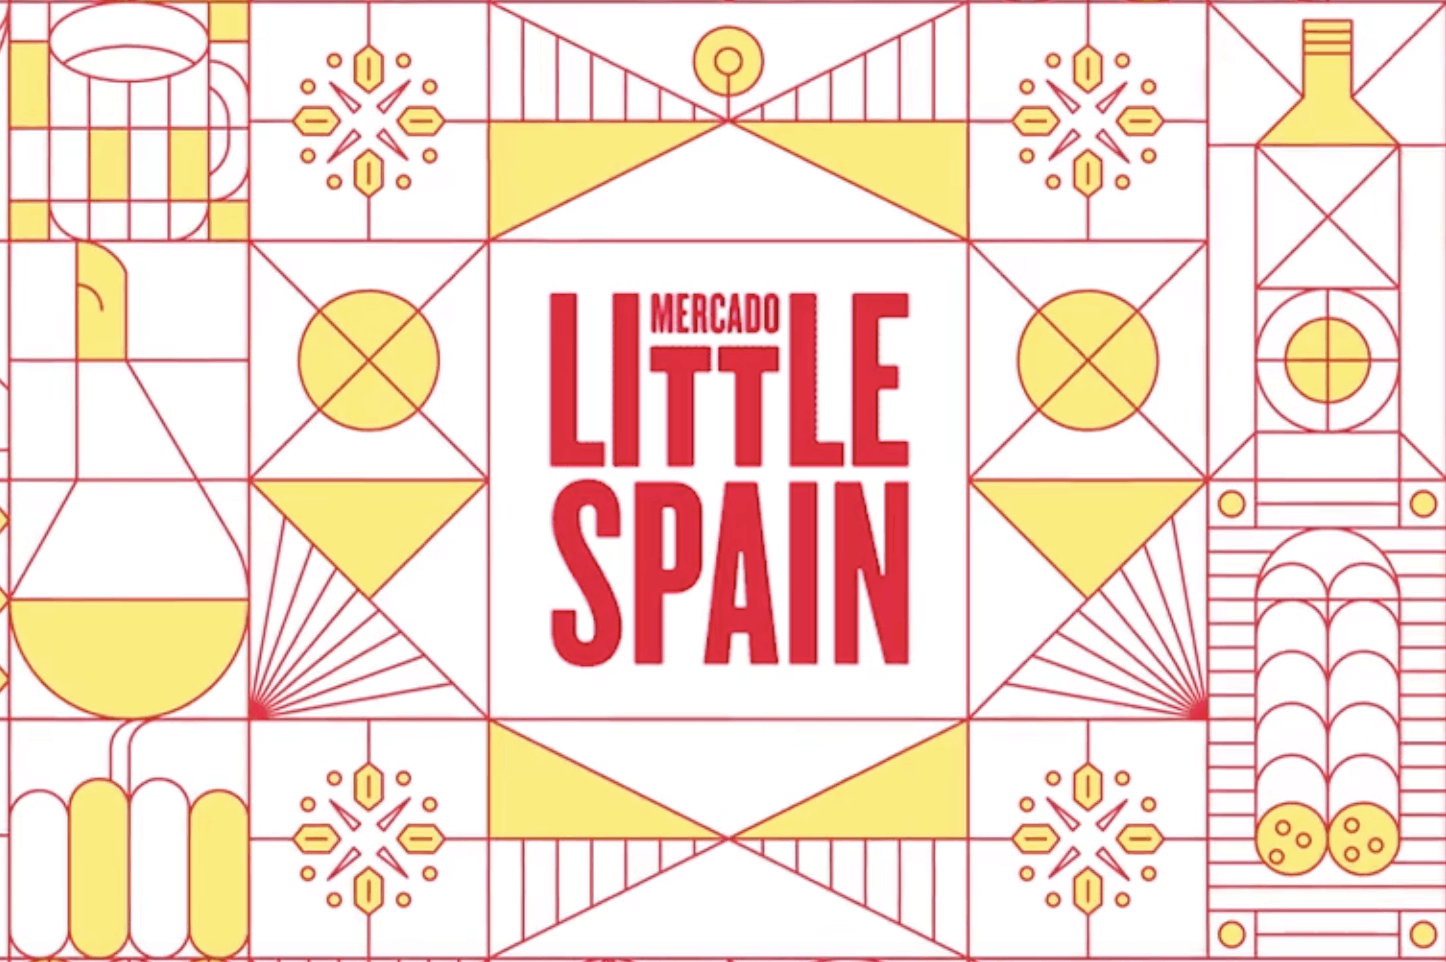 Restaurant logo - Little Spain